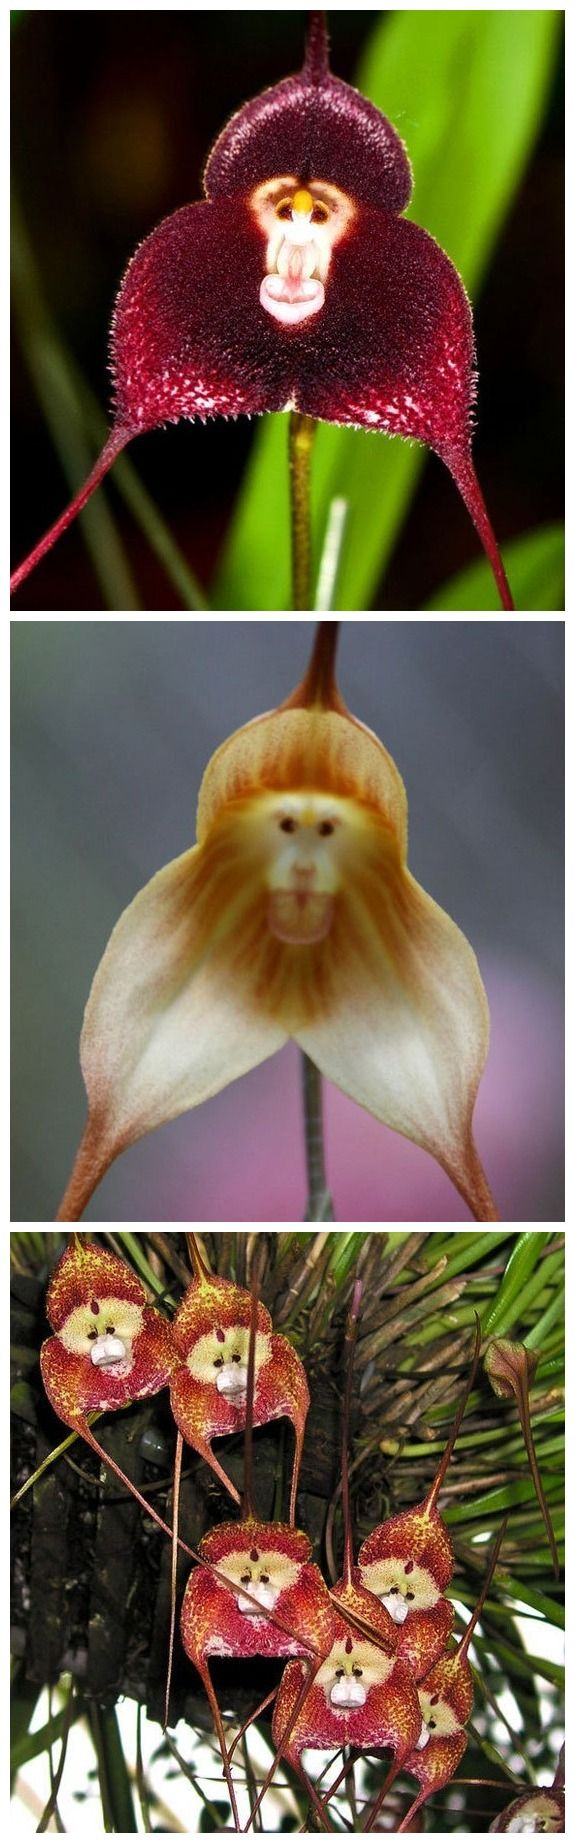 Don't feed the monkey orchids Wandering through the cloud forests of Ecuador and Peru could provide a healthy shock if you happen upon a cluster of the very rare Monkey Orchid (Dracula simian), which...